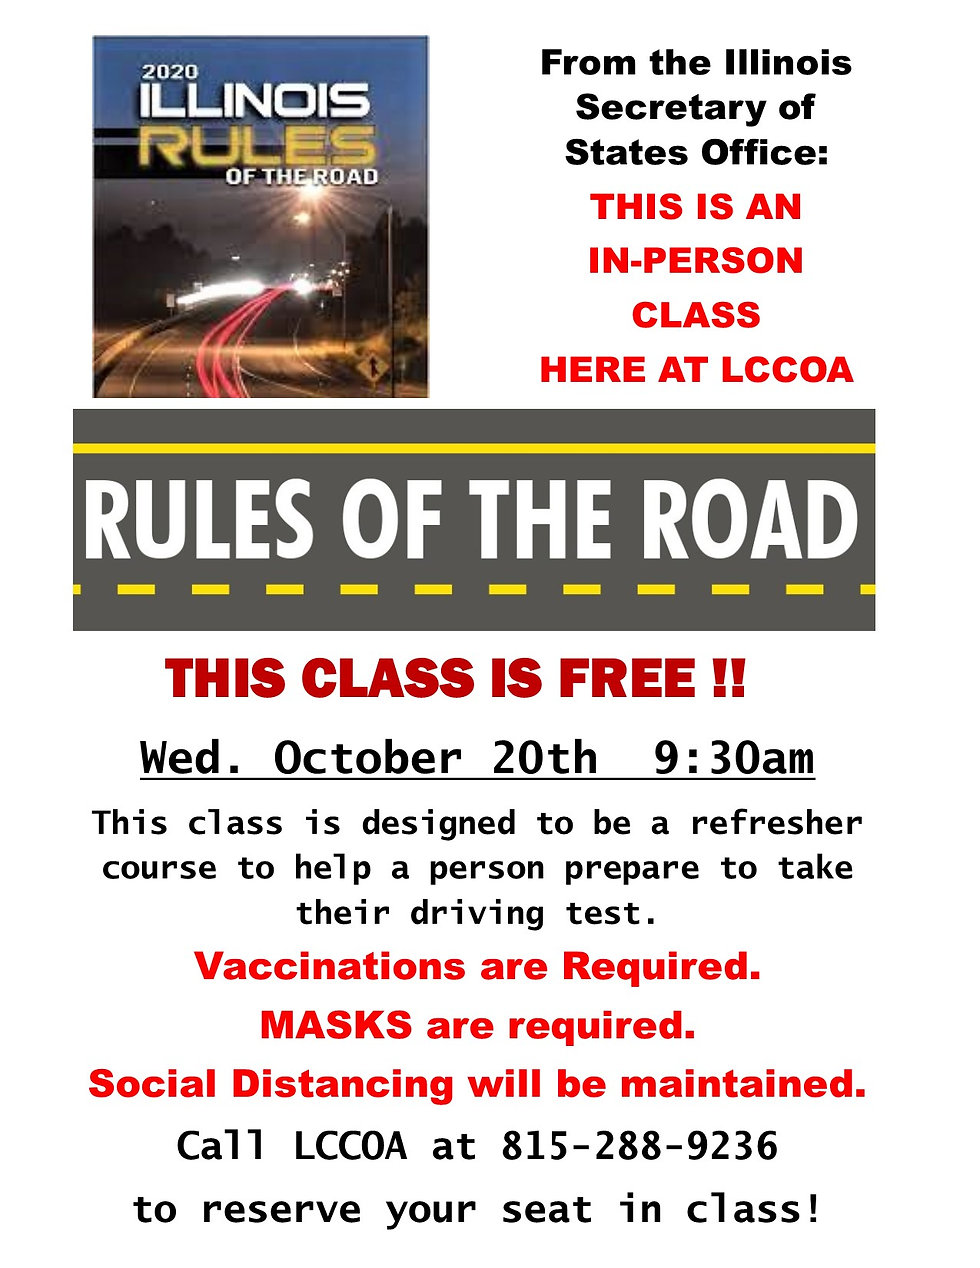 10-20 Rules of the Road flyer pic.jpg